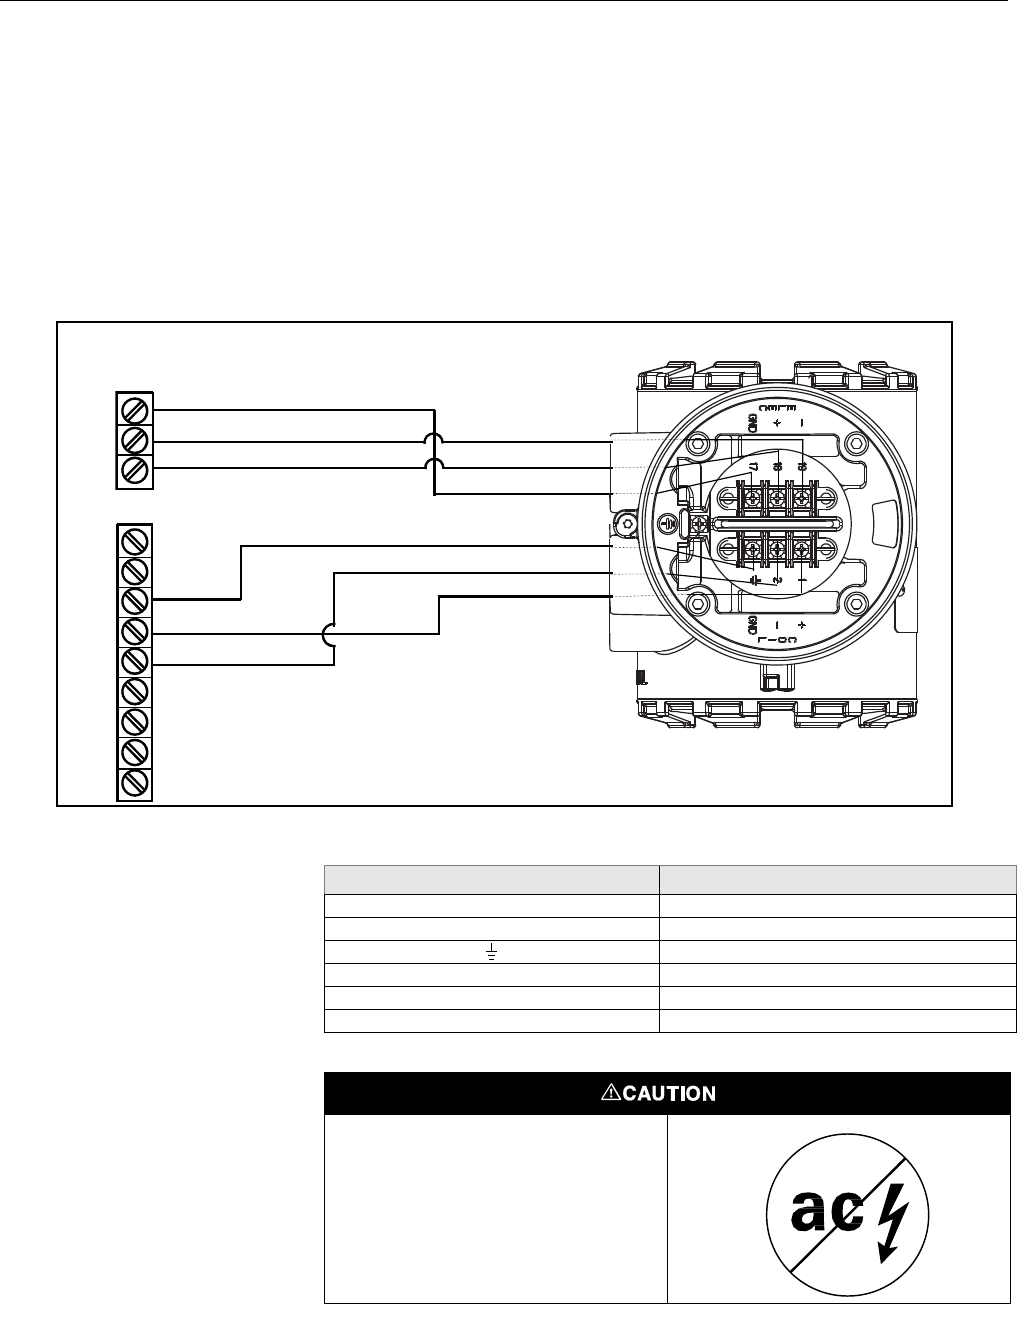 4cb8a751 c526 465f 9493 713bf7e156ff bg87 page 135 of emerson oxygen equipment rosemount 8732 user guide rosemount 8732e wiring diagram at readyjetset.co